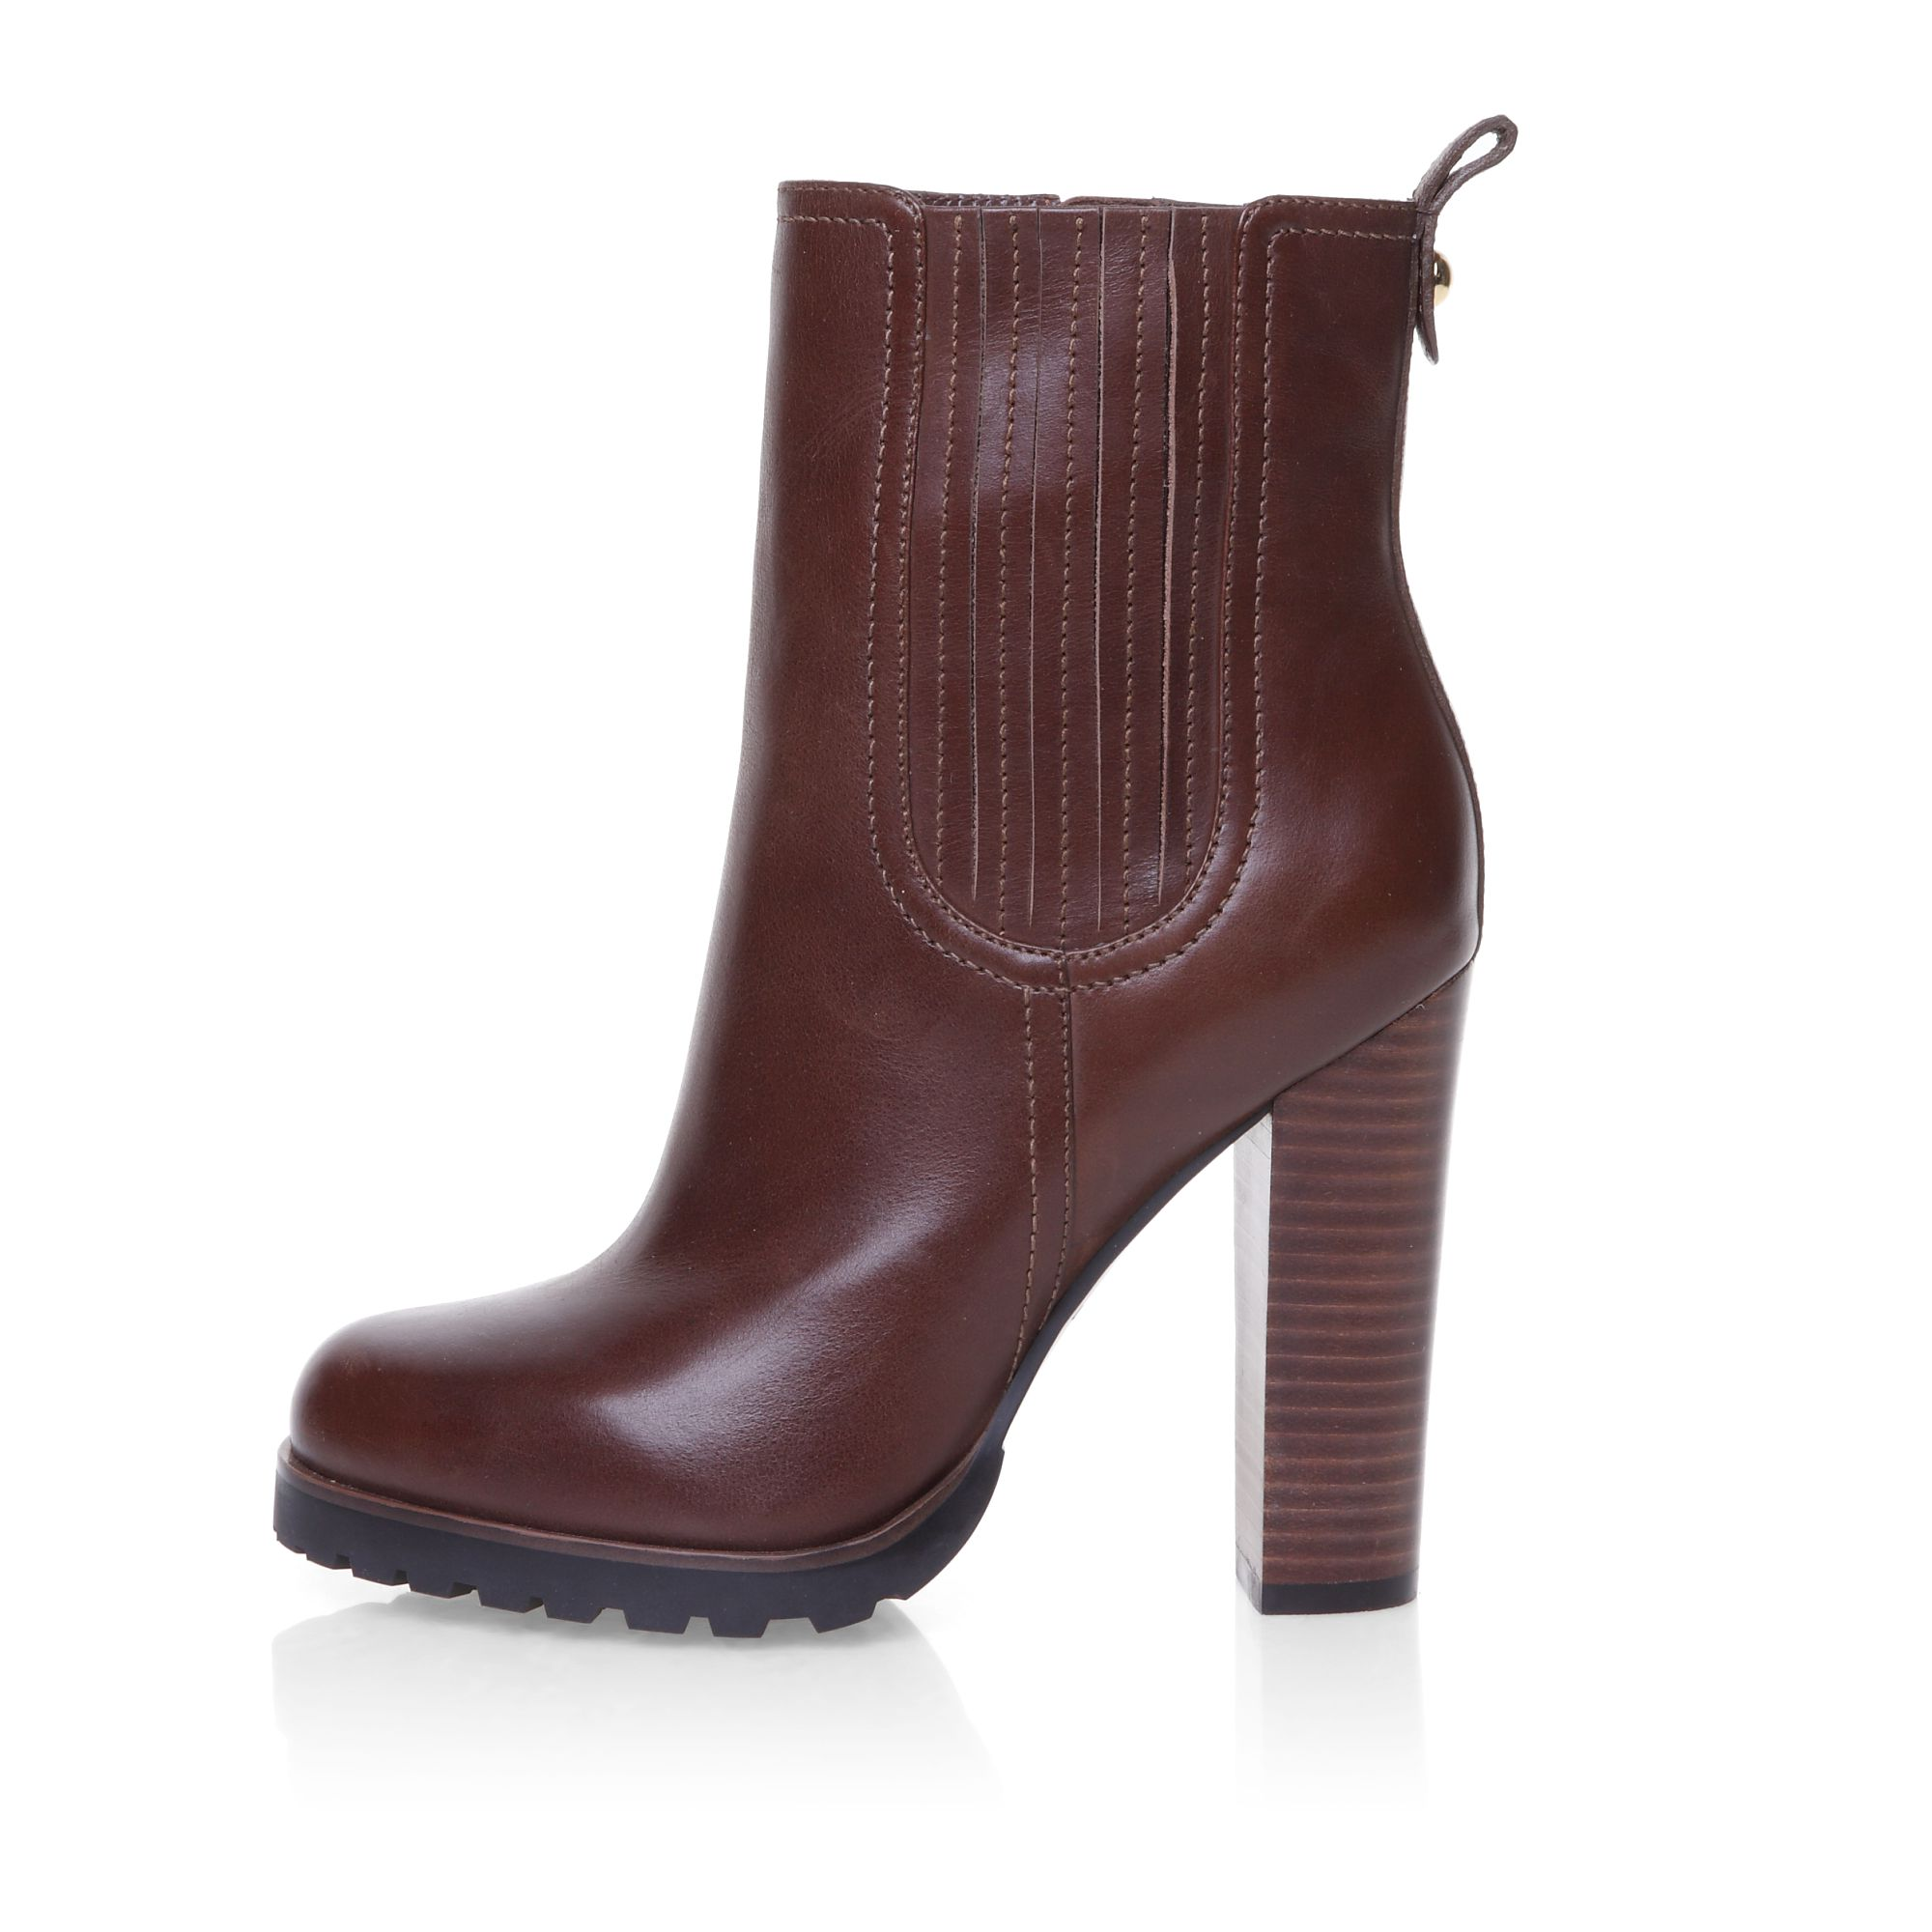 Ankle boot with stacked heel